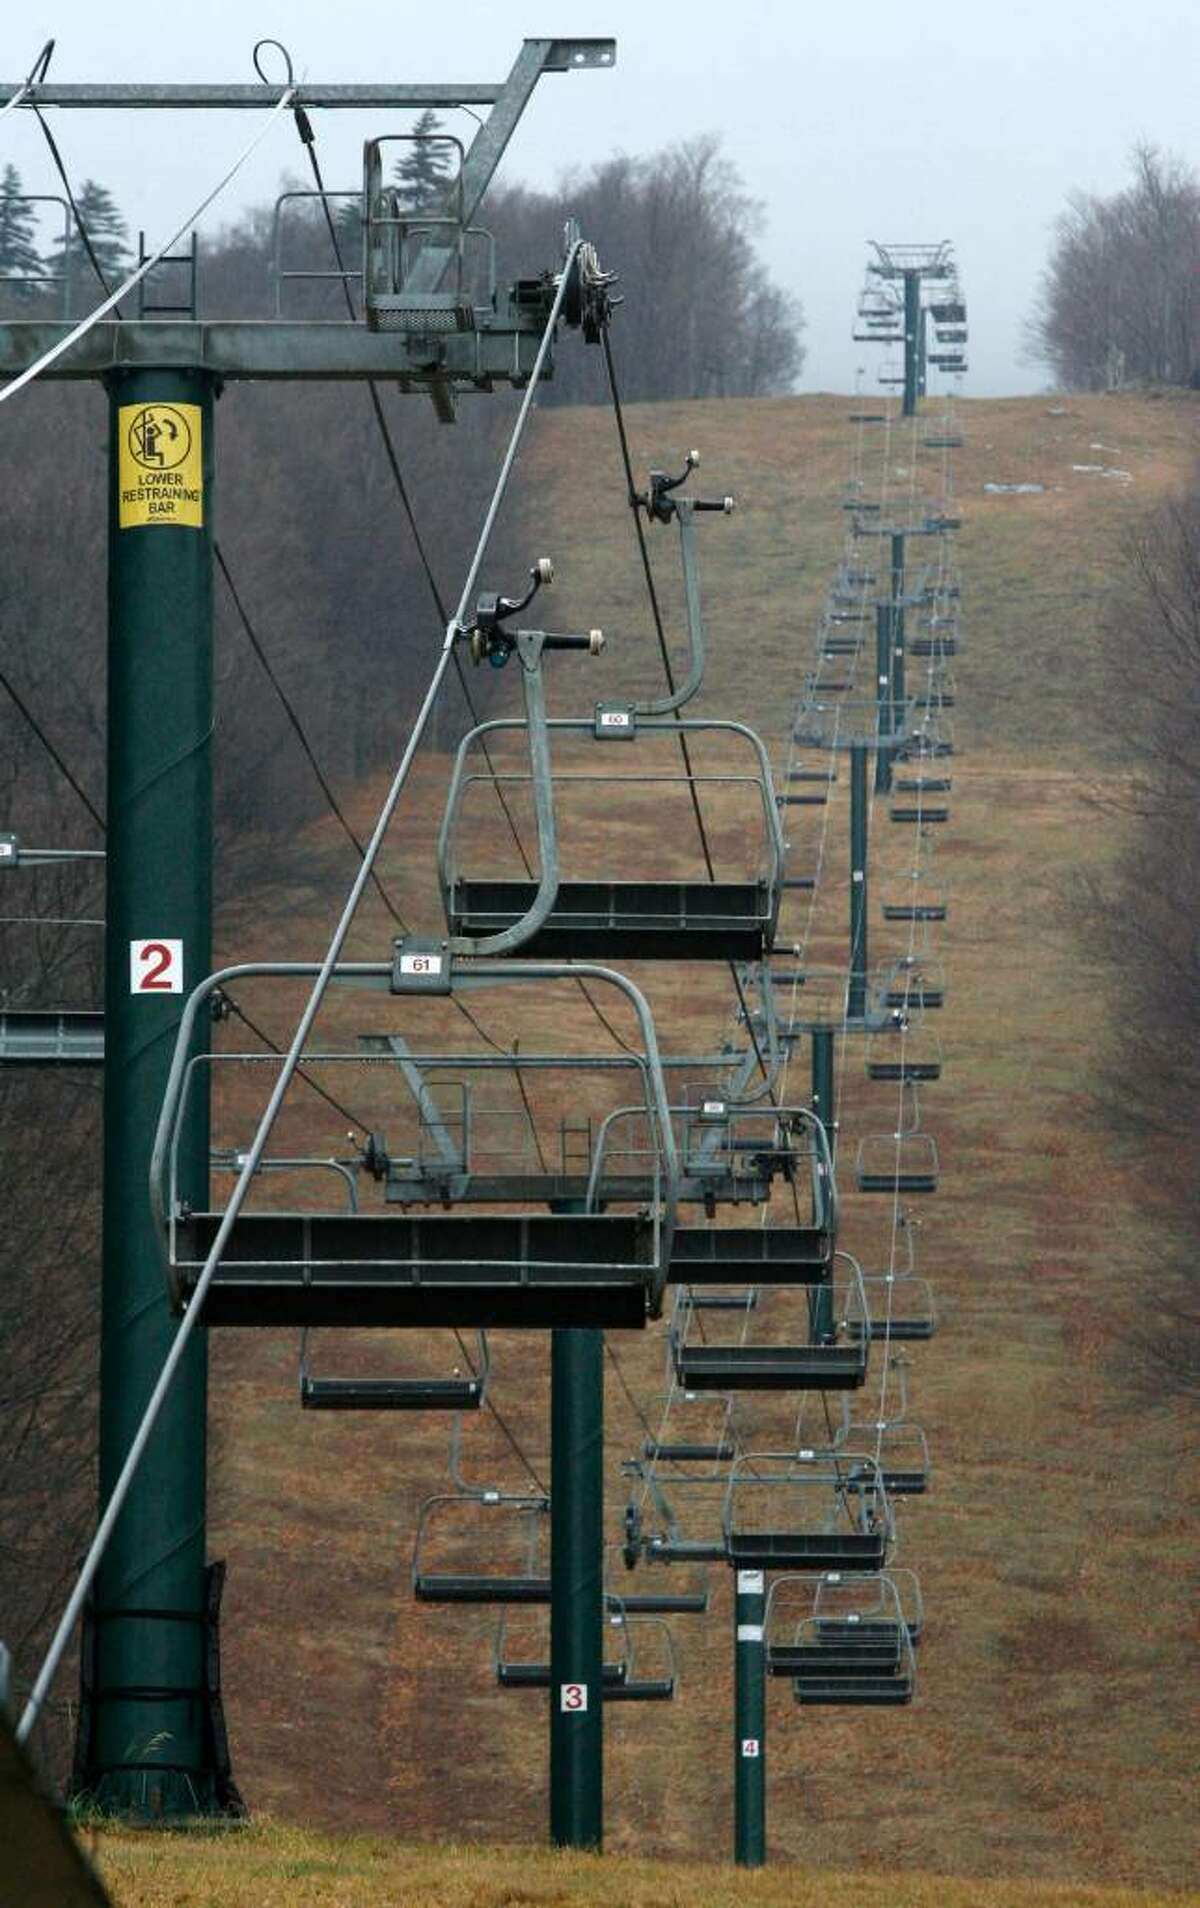 Ski lifts are silent and the slopes are bare at the Sugarbush ski resort in Warren, Vt., Friday, Nov. 27, 2009. Many Vermont ski areas have been closed for the Thanksgiving holiday. Weather forecasters say a strong nor'easter storm is heading through New England on Friday, with the possibility of leaving behind some high-elevation snow for Vermont's ski slopes.(AP Photo/Toby Talbot)